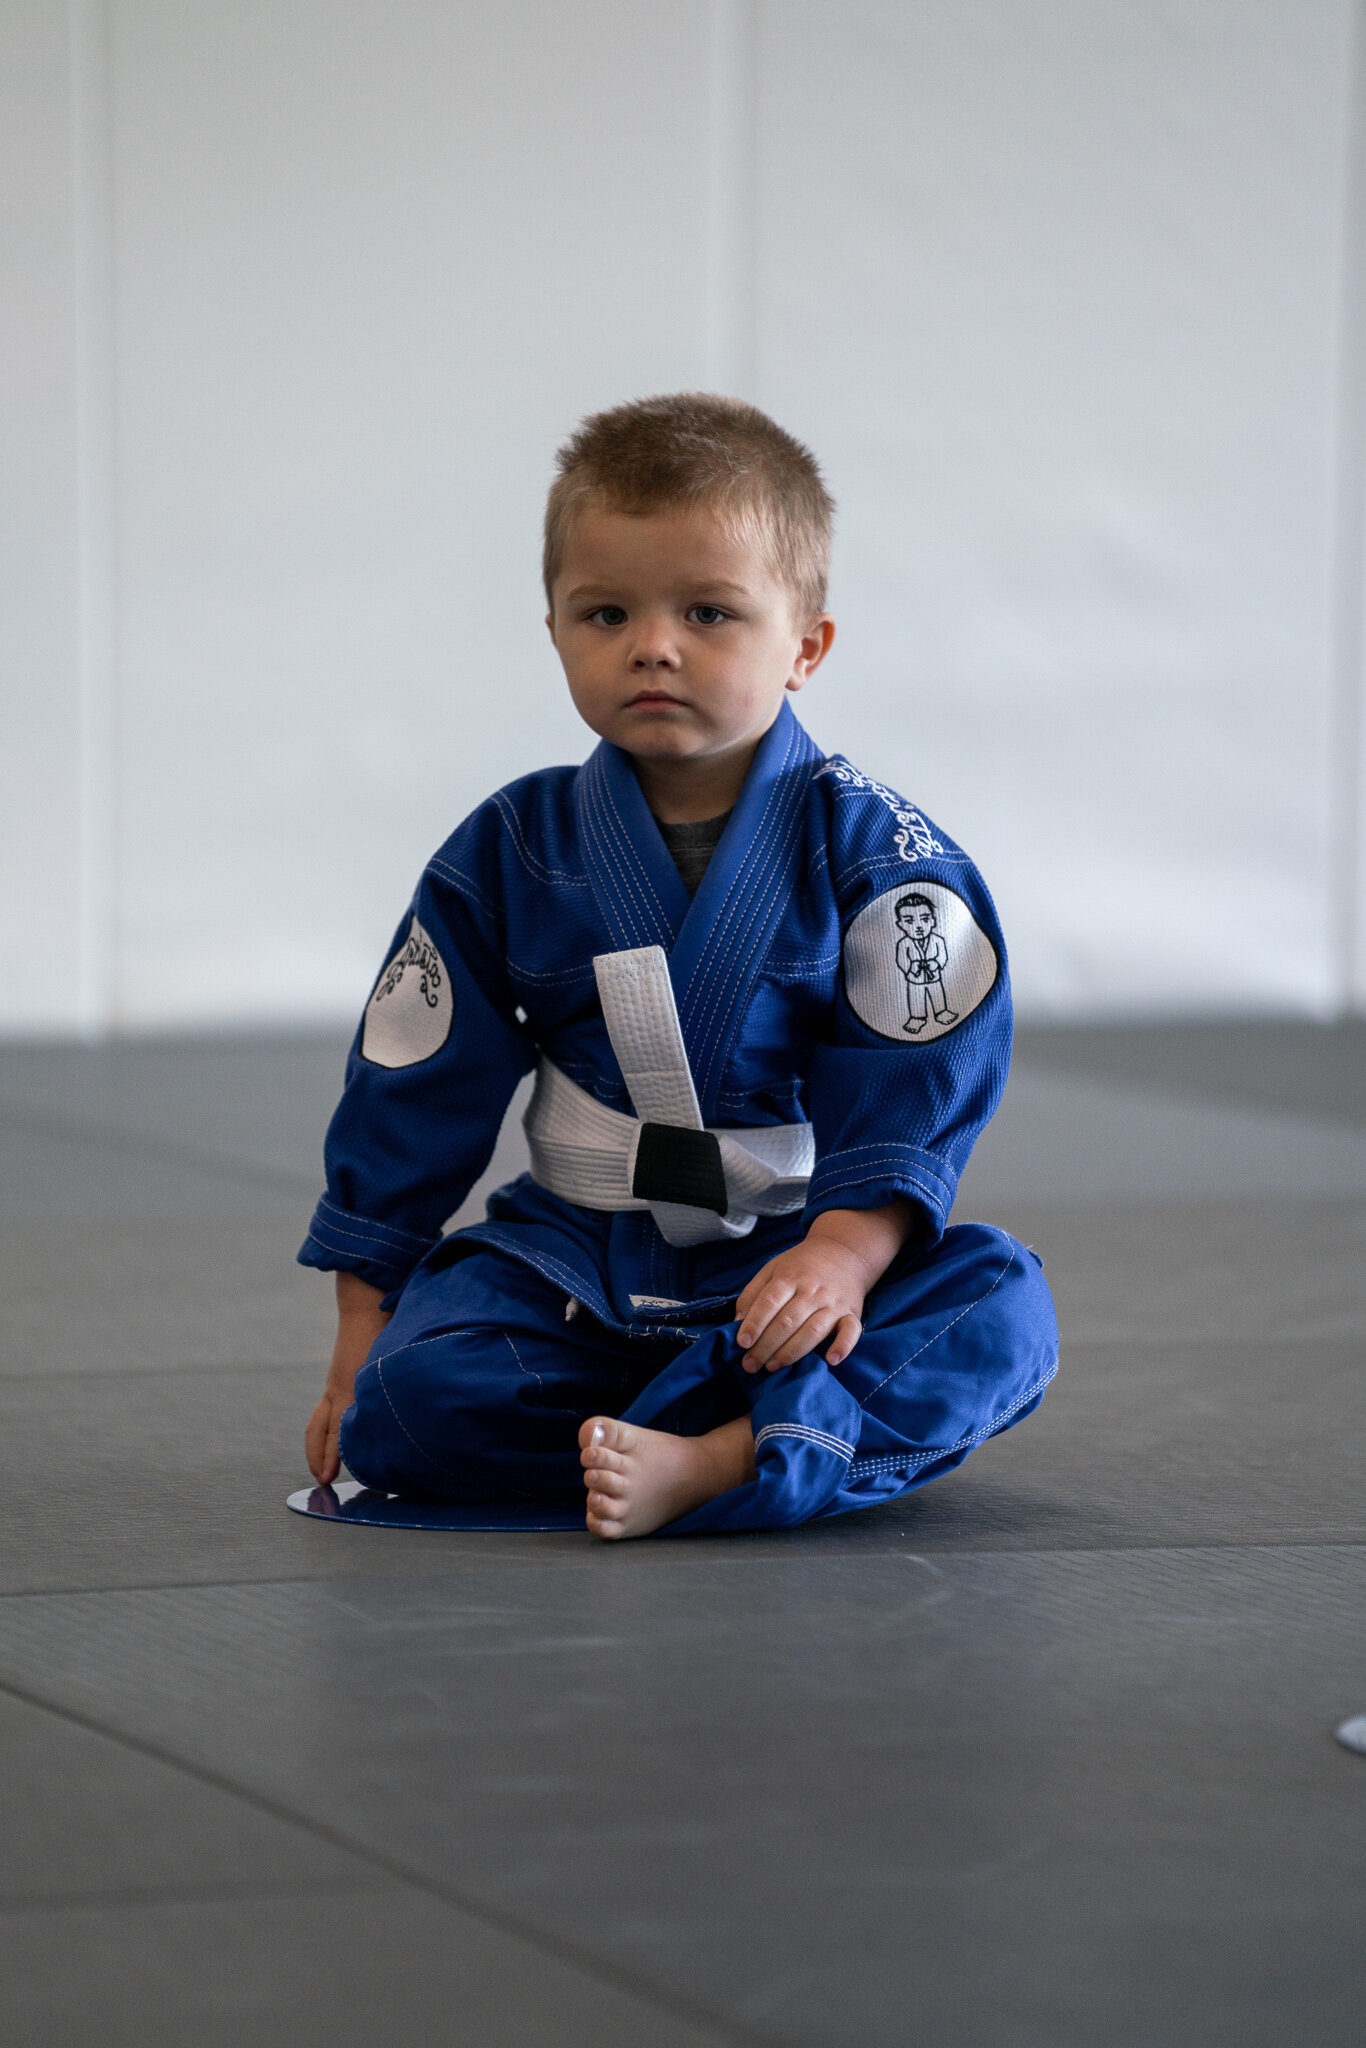 - AGES 3 & 4In our Tiny Artists program we introduce our smallest members to the fun and exciting world of Jiu-Jitsu. We combine Jiu-Jitsu drills with entertaining games that will keep them amused while at the same time learning the foundations of Jiu-Jitsu.